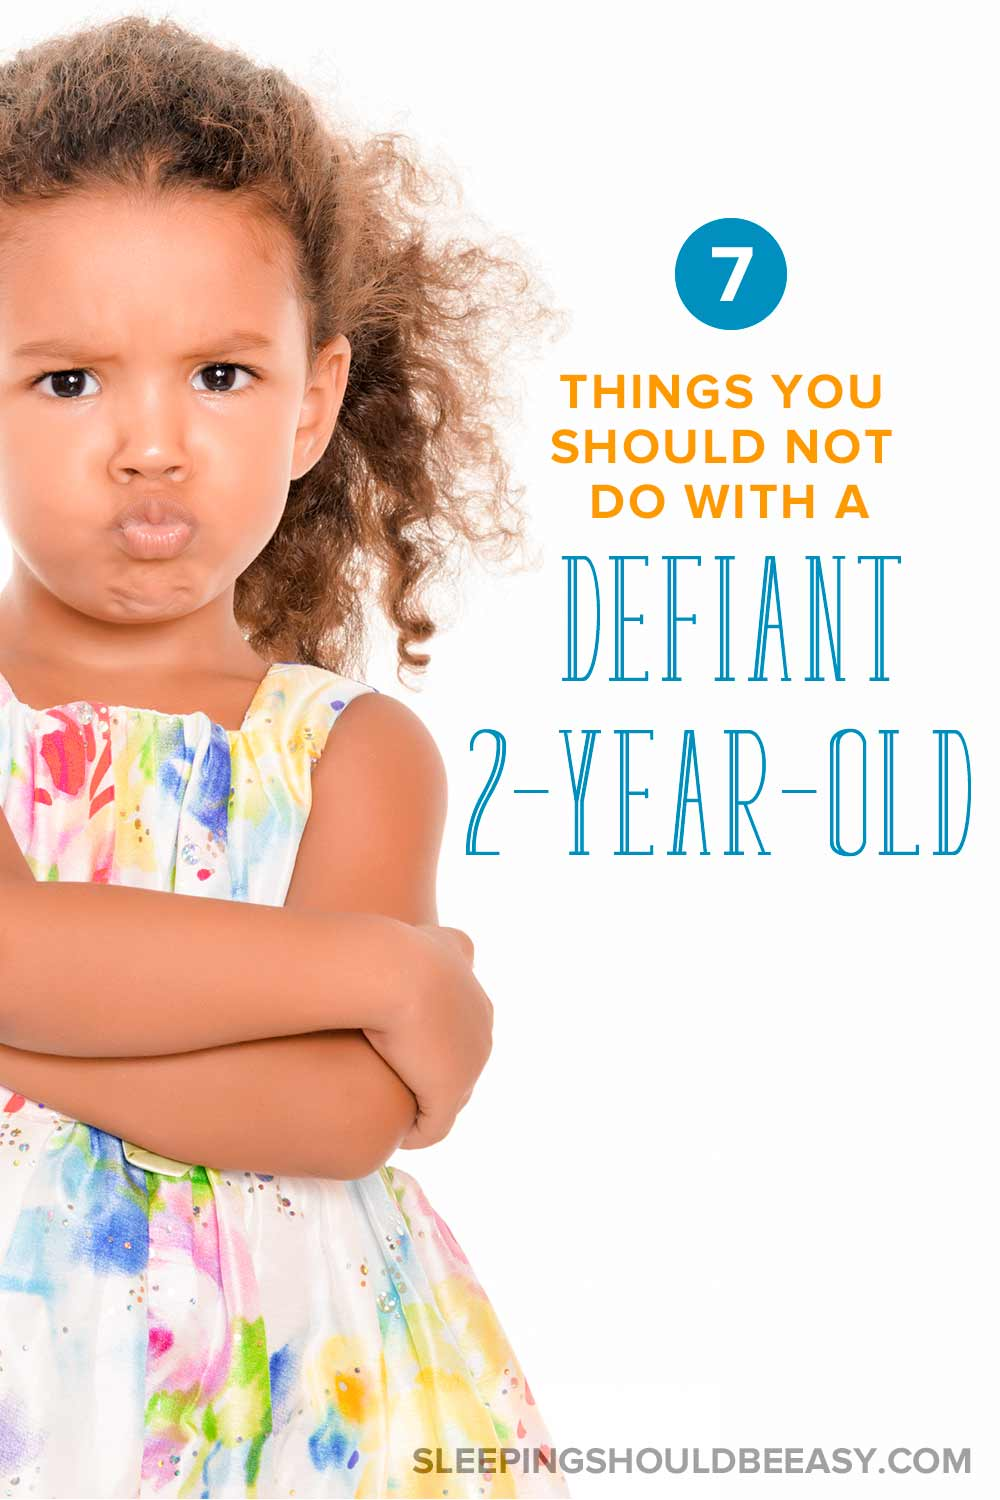 Defiant 2 year old girl with her arms crossed